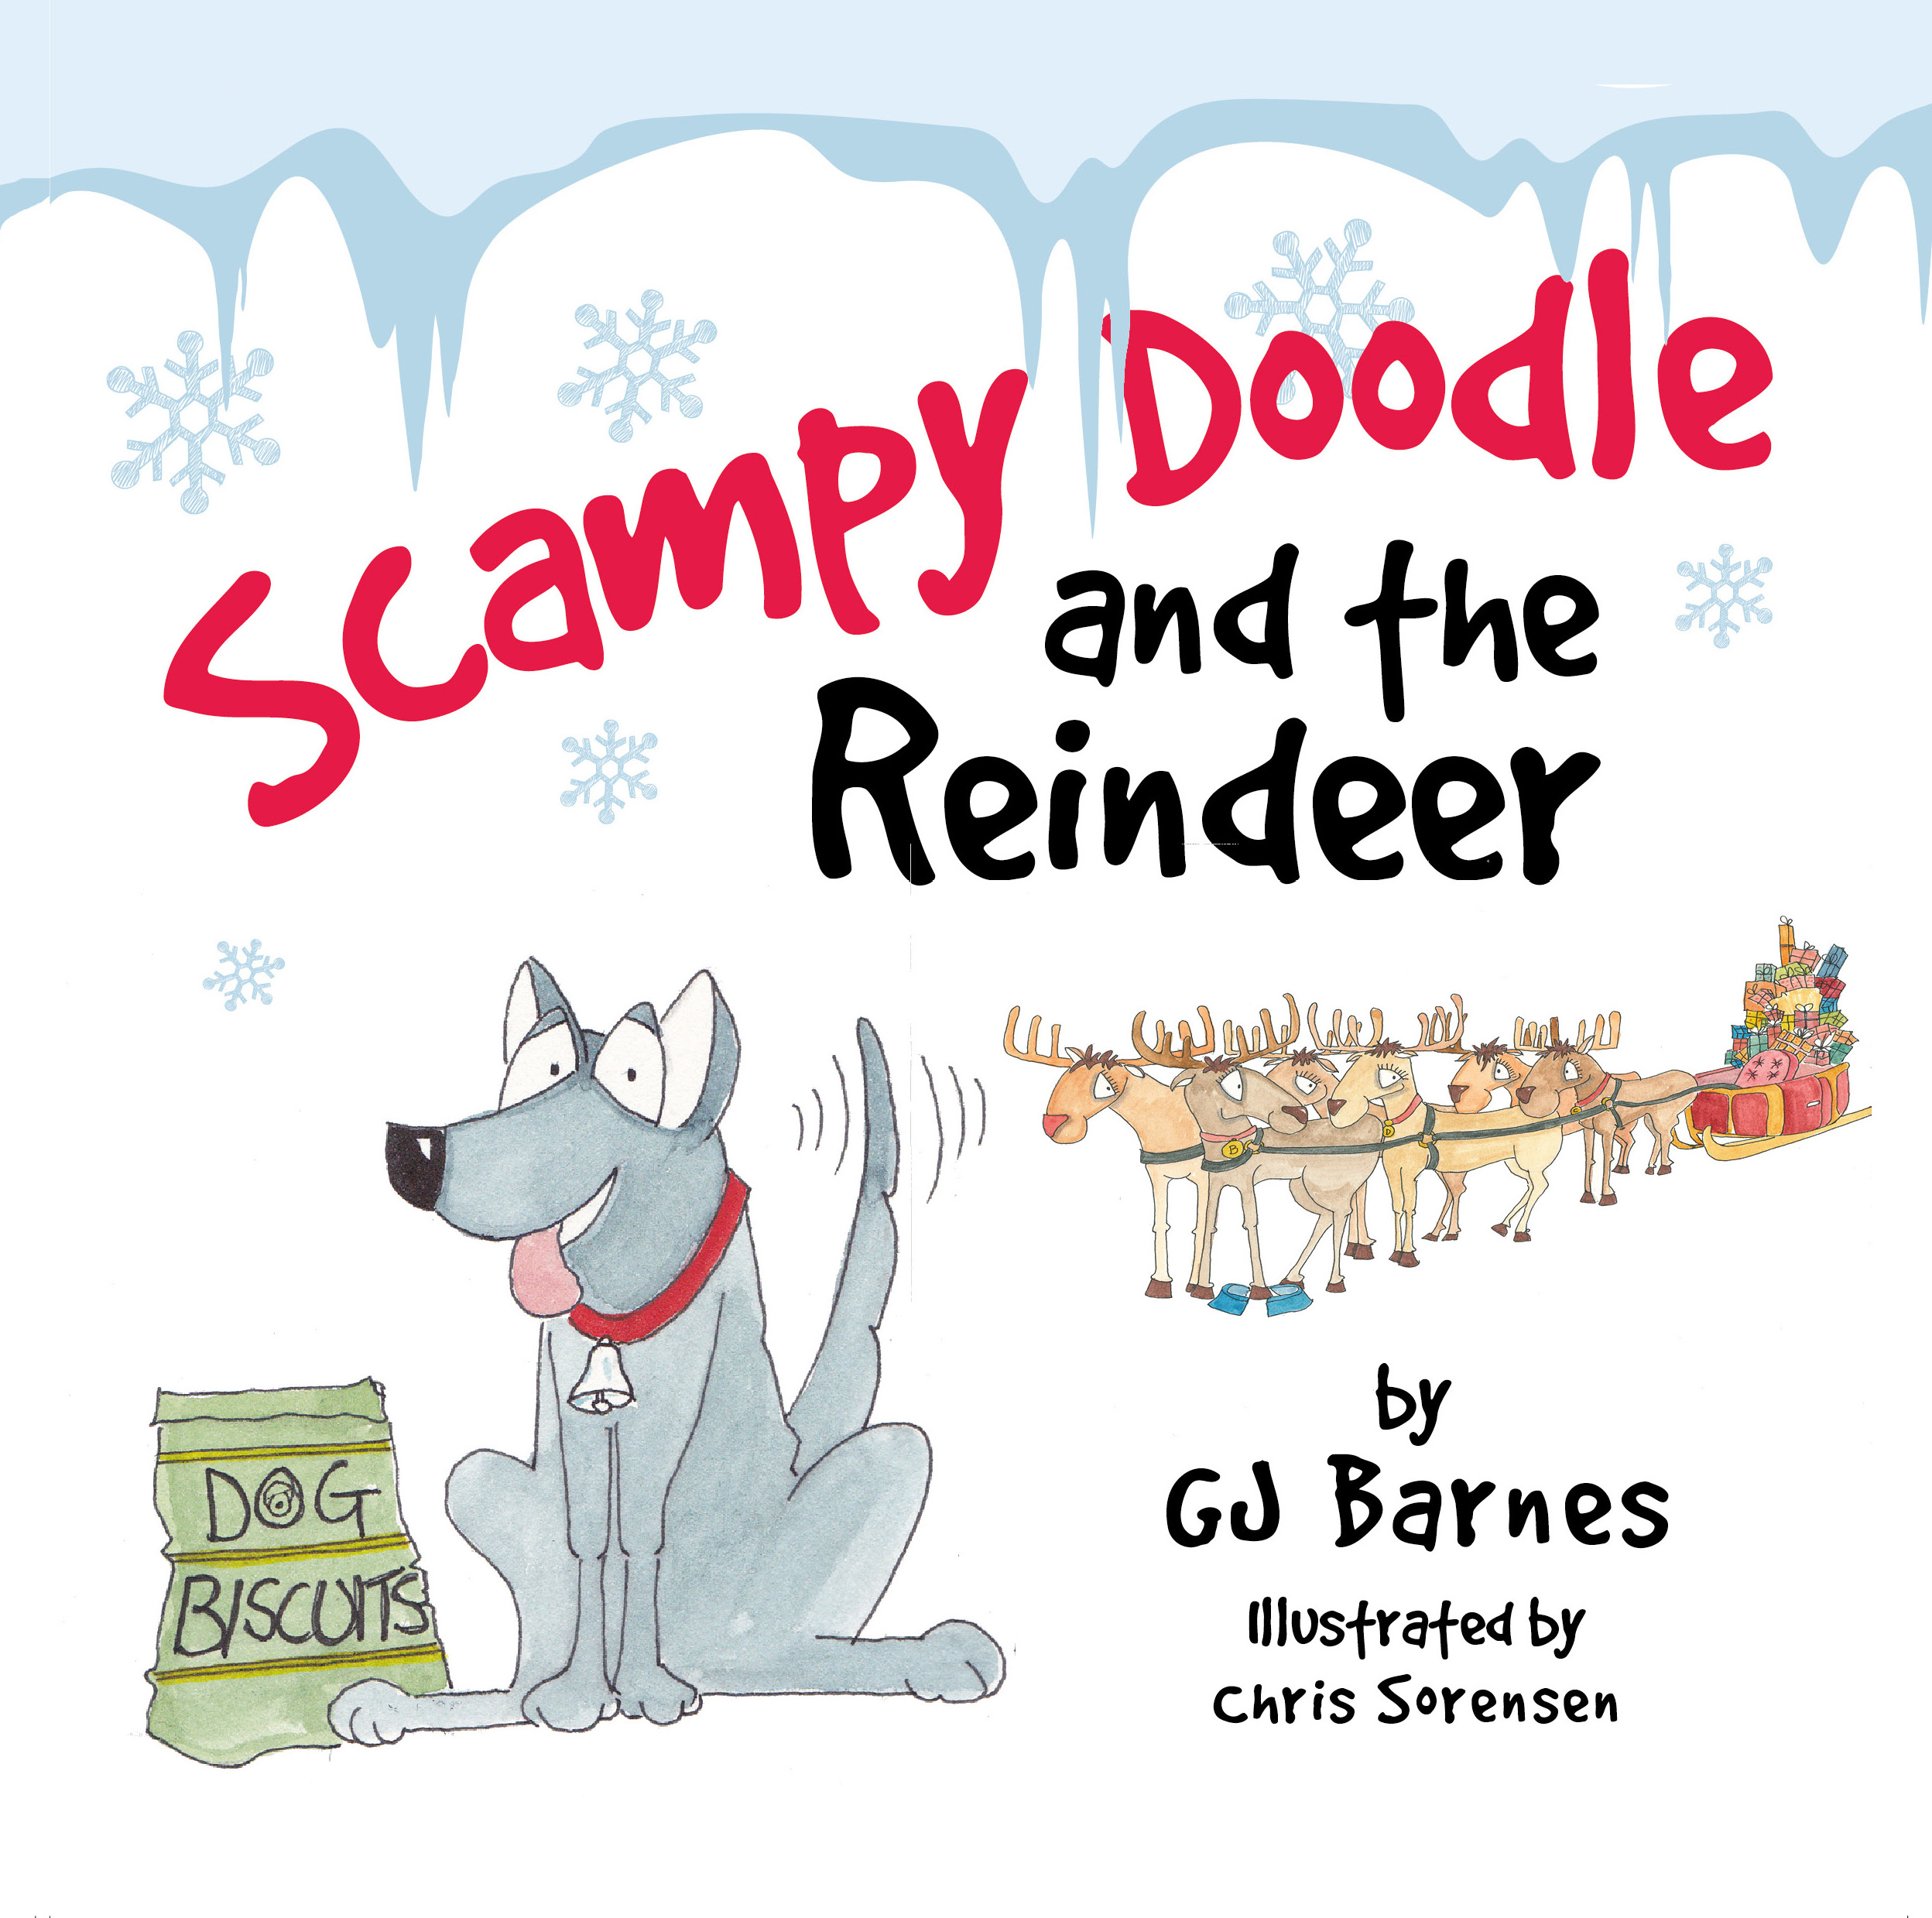 Scampy-Doodle-and-the-Reindeer